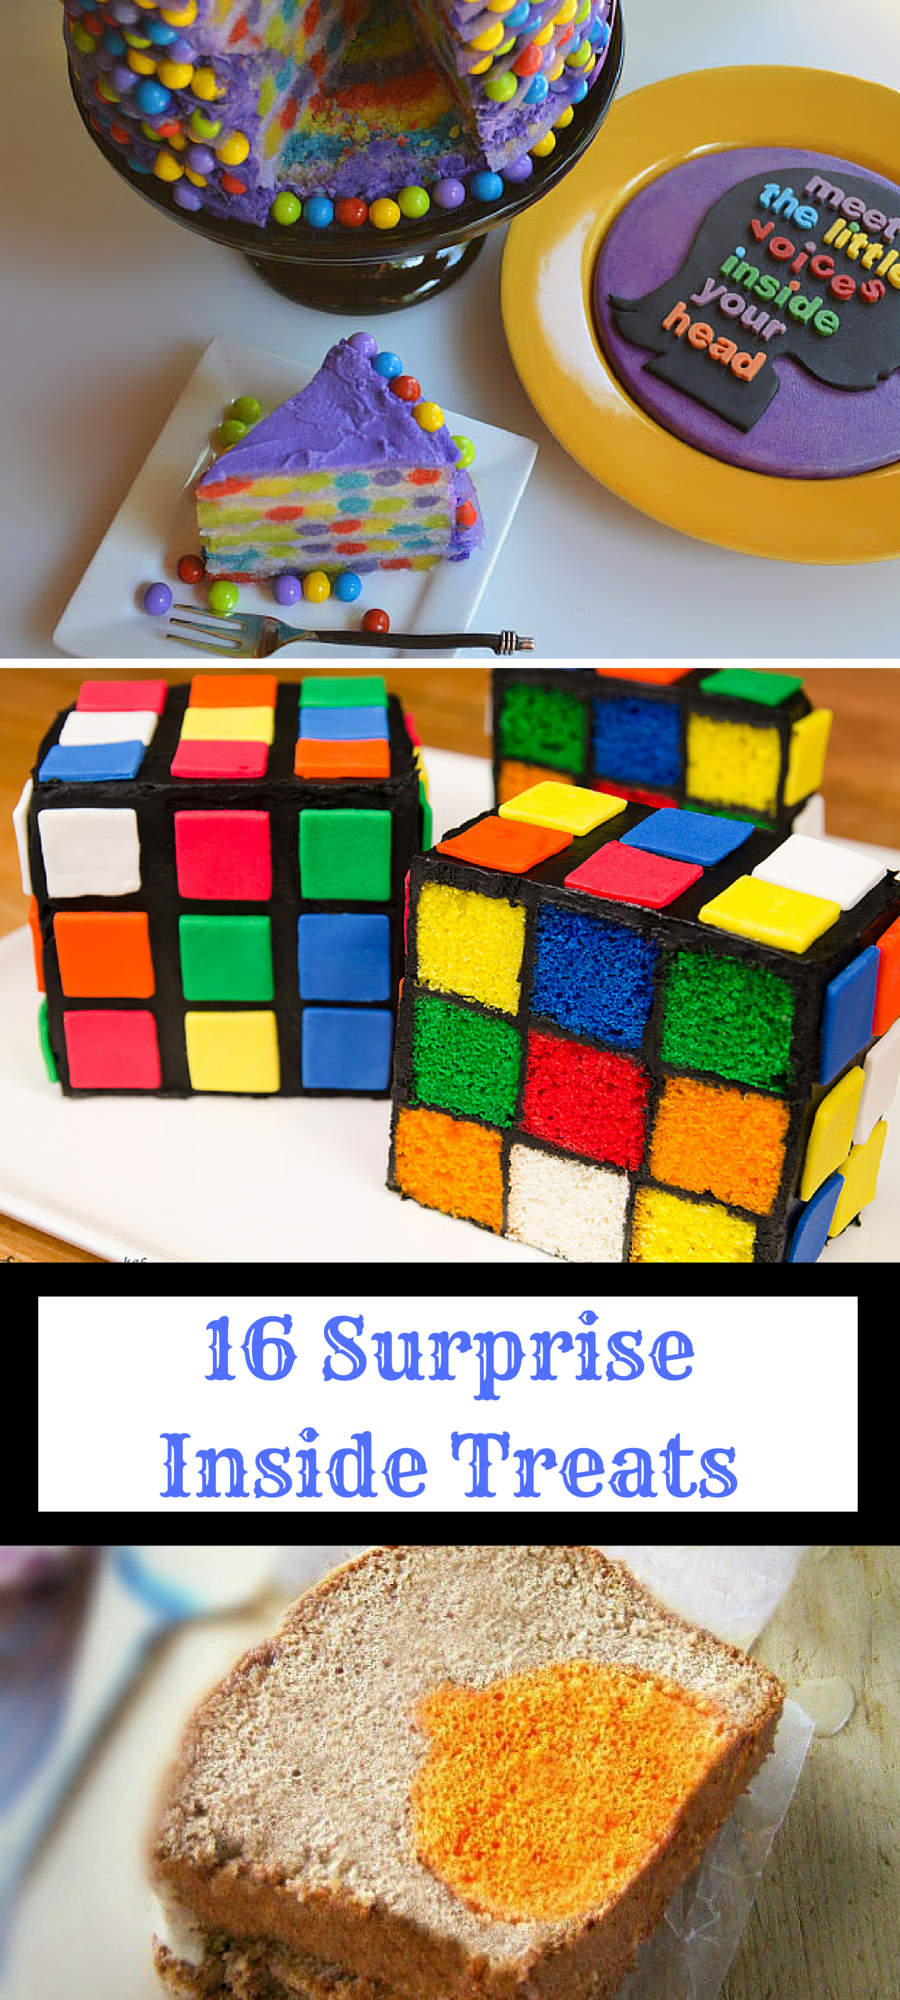 See how creative people get with 16 of the best surprise inside treats out there!